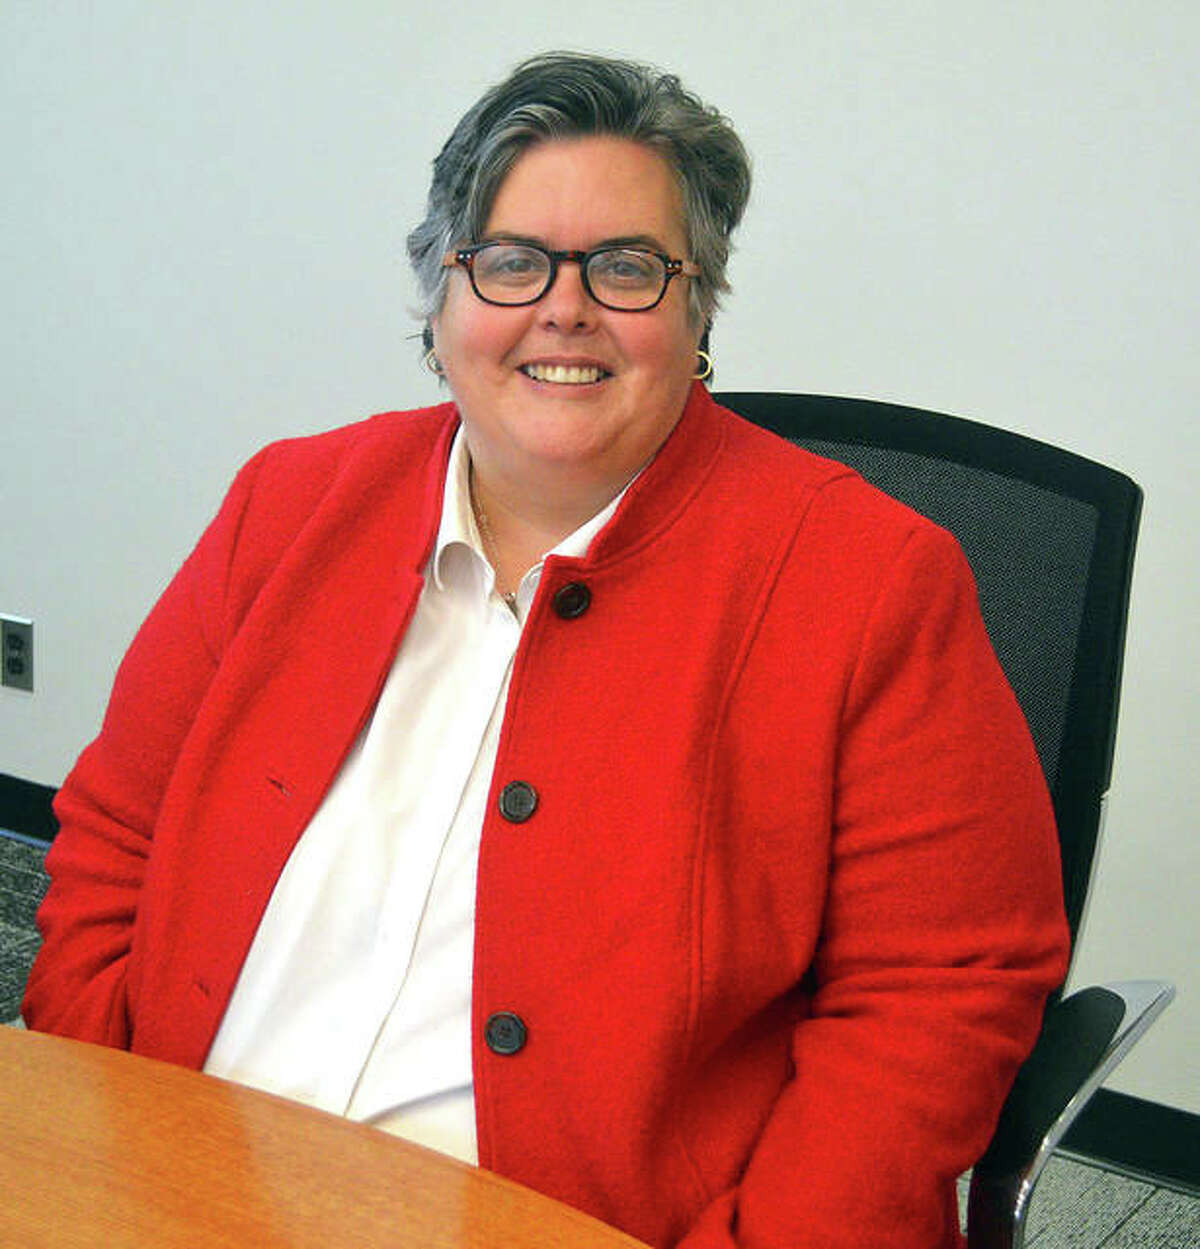 Denise Cobb, who is the provost and vice chancellor for academic affairs at SIUE, has been named to the GeoFutures Advisory Committee in St. Louis.